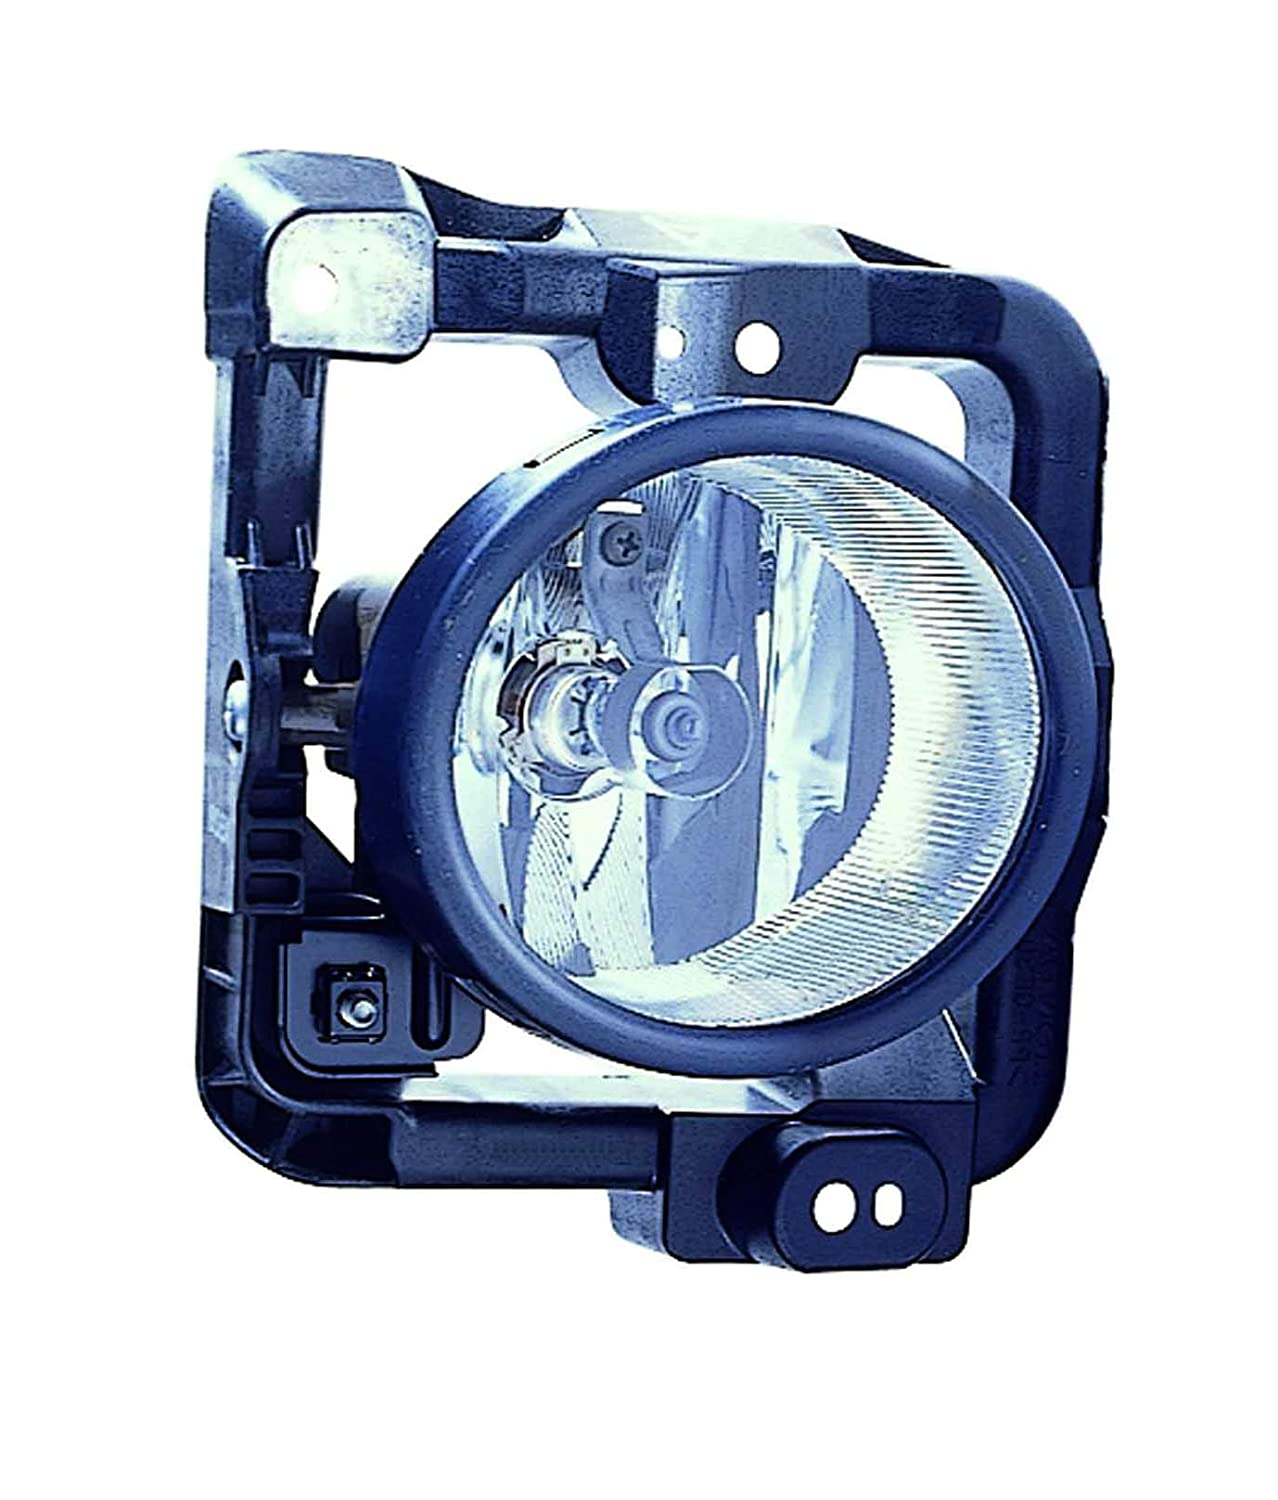 Depo 327-2006R-AS Acura TSX Passenger Side Replacement Fog Light Assembly 02-00-327-2006R-AS